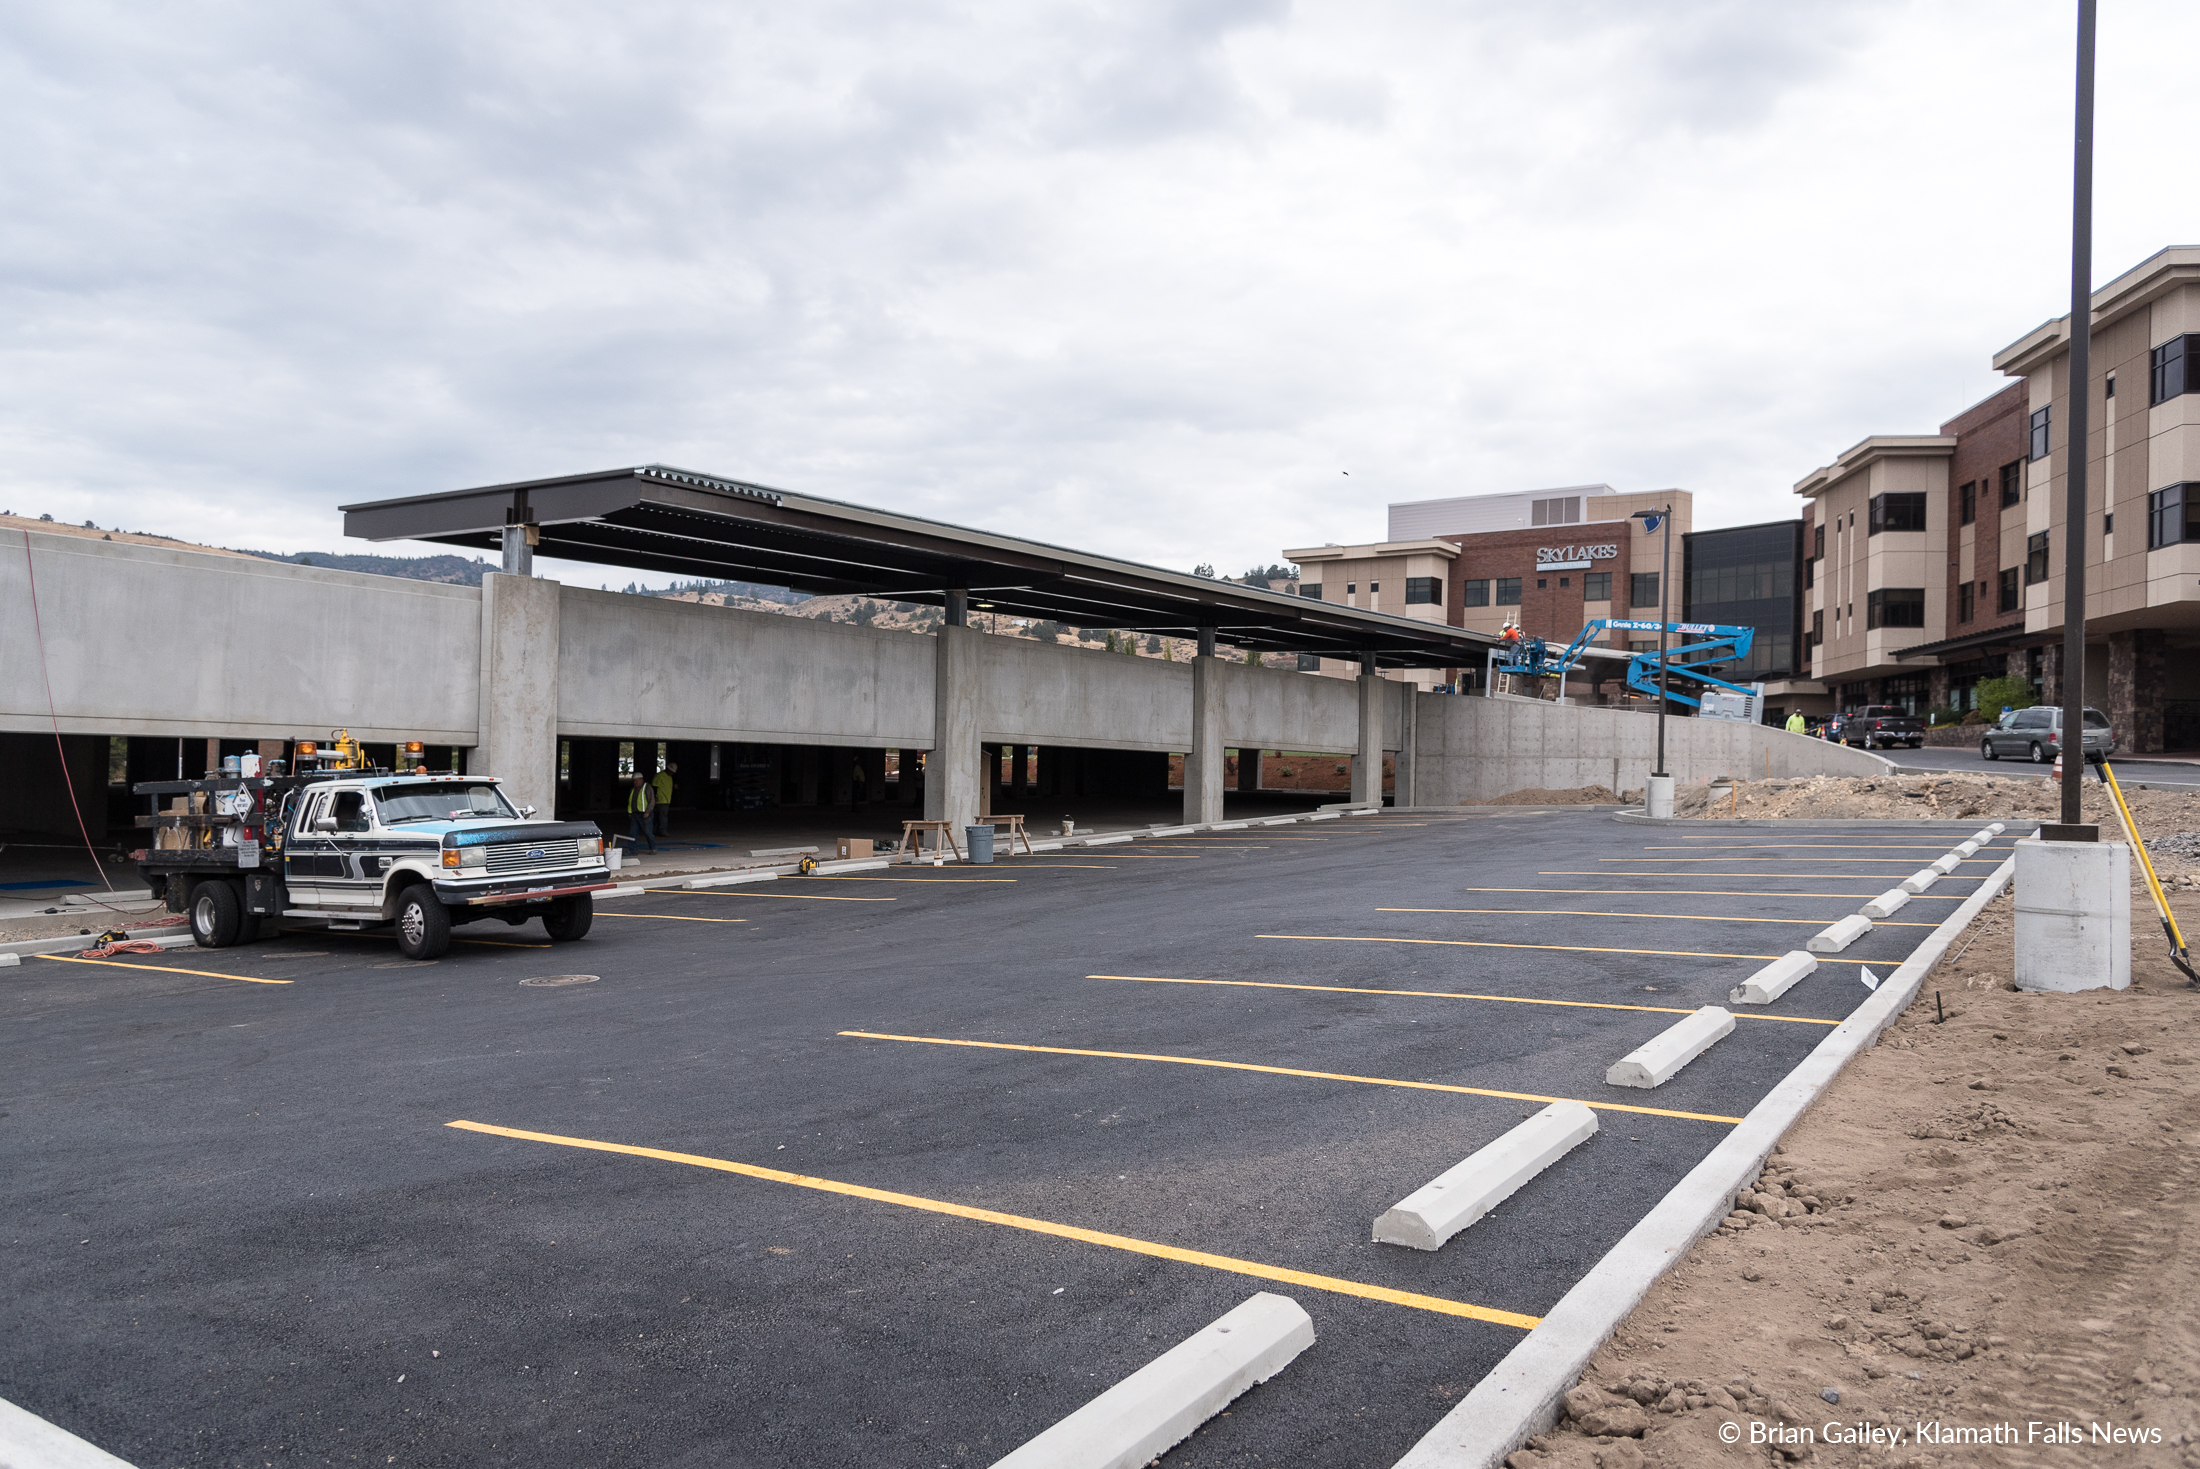 322 Parking spaces are now open at Sky Lakes Medical Center with the completion of a $10 million structure. (Brian Gailey)